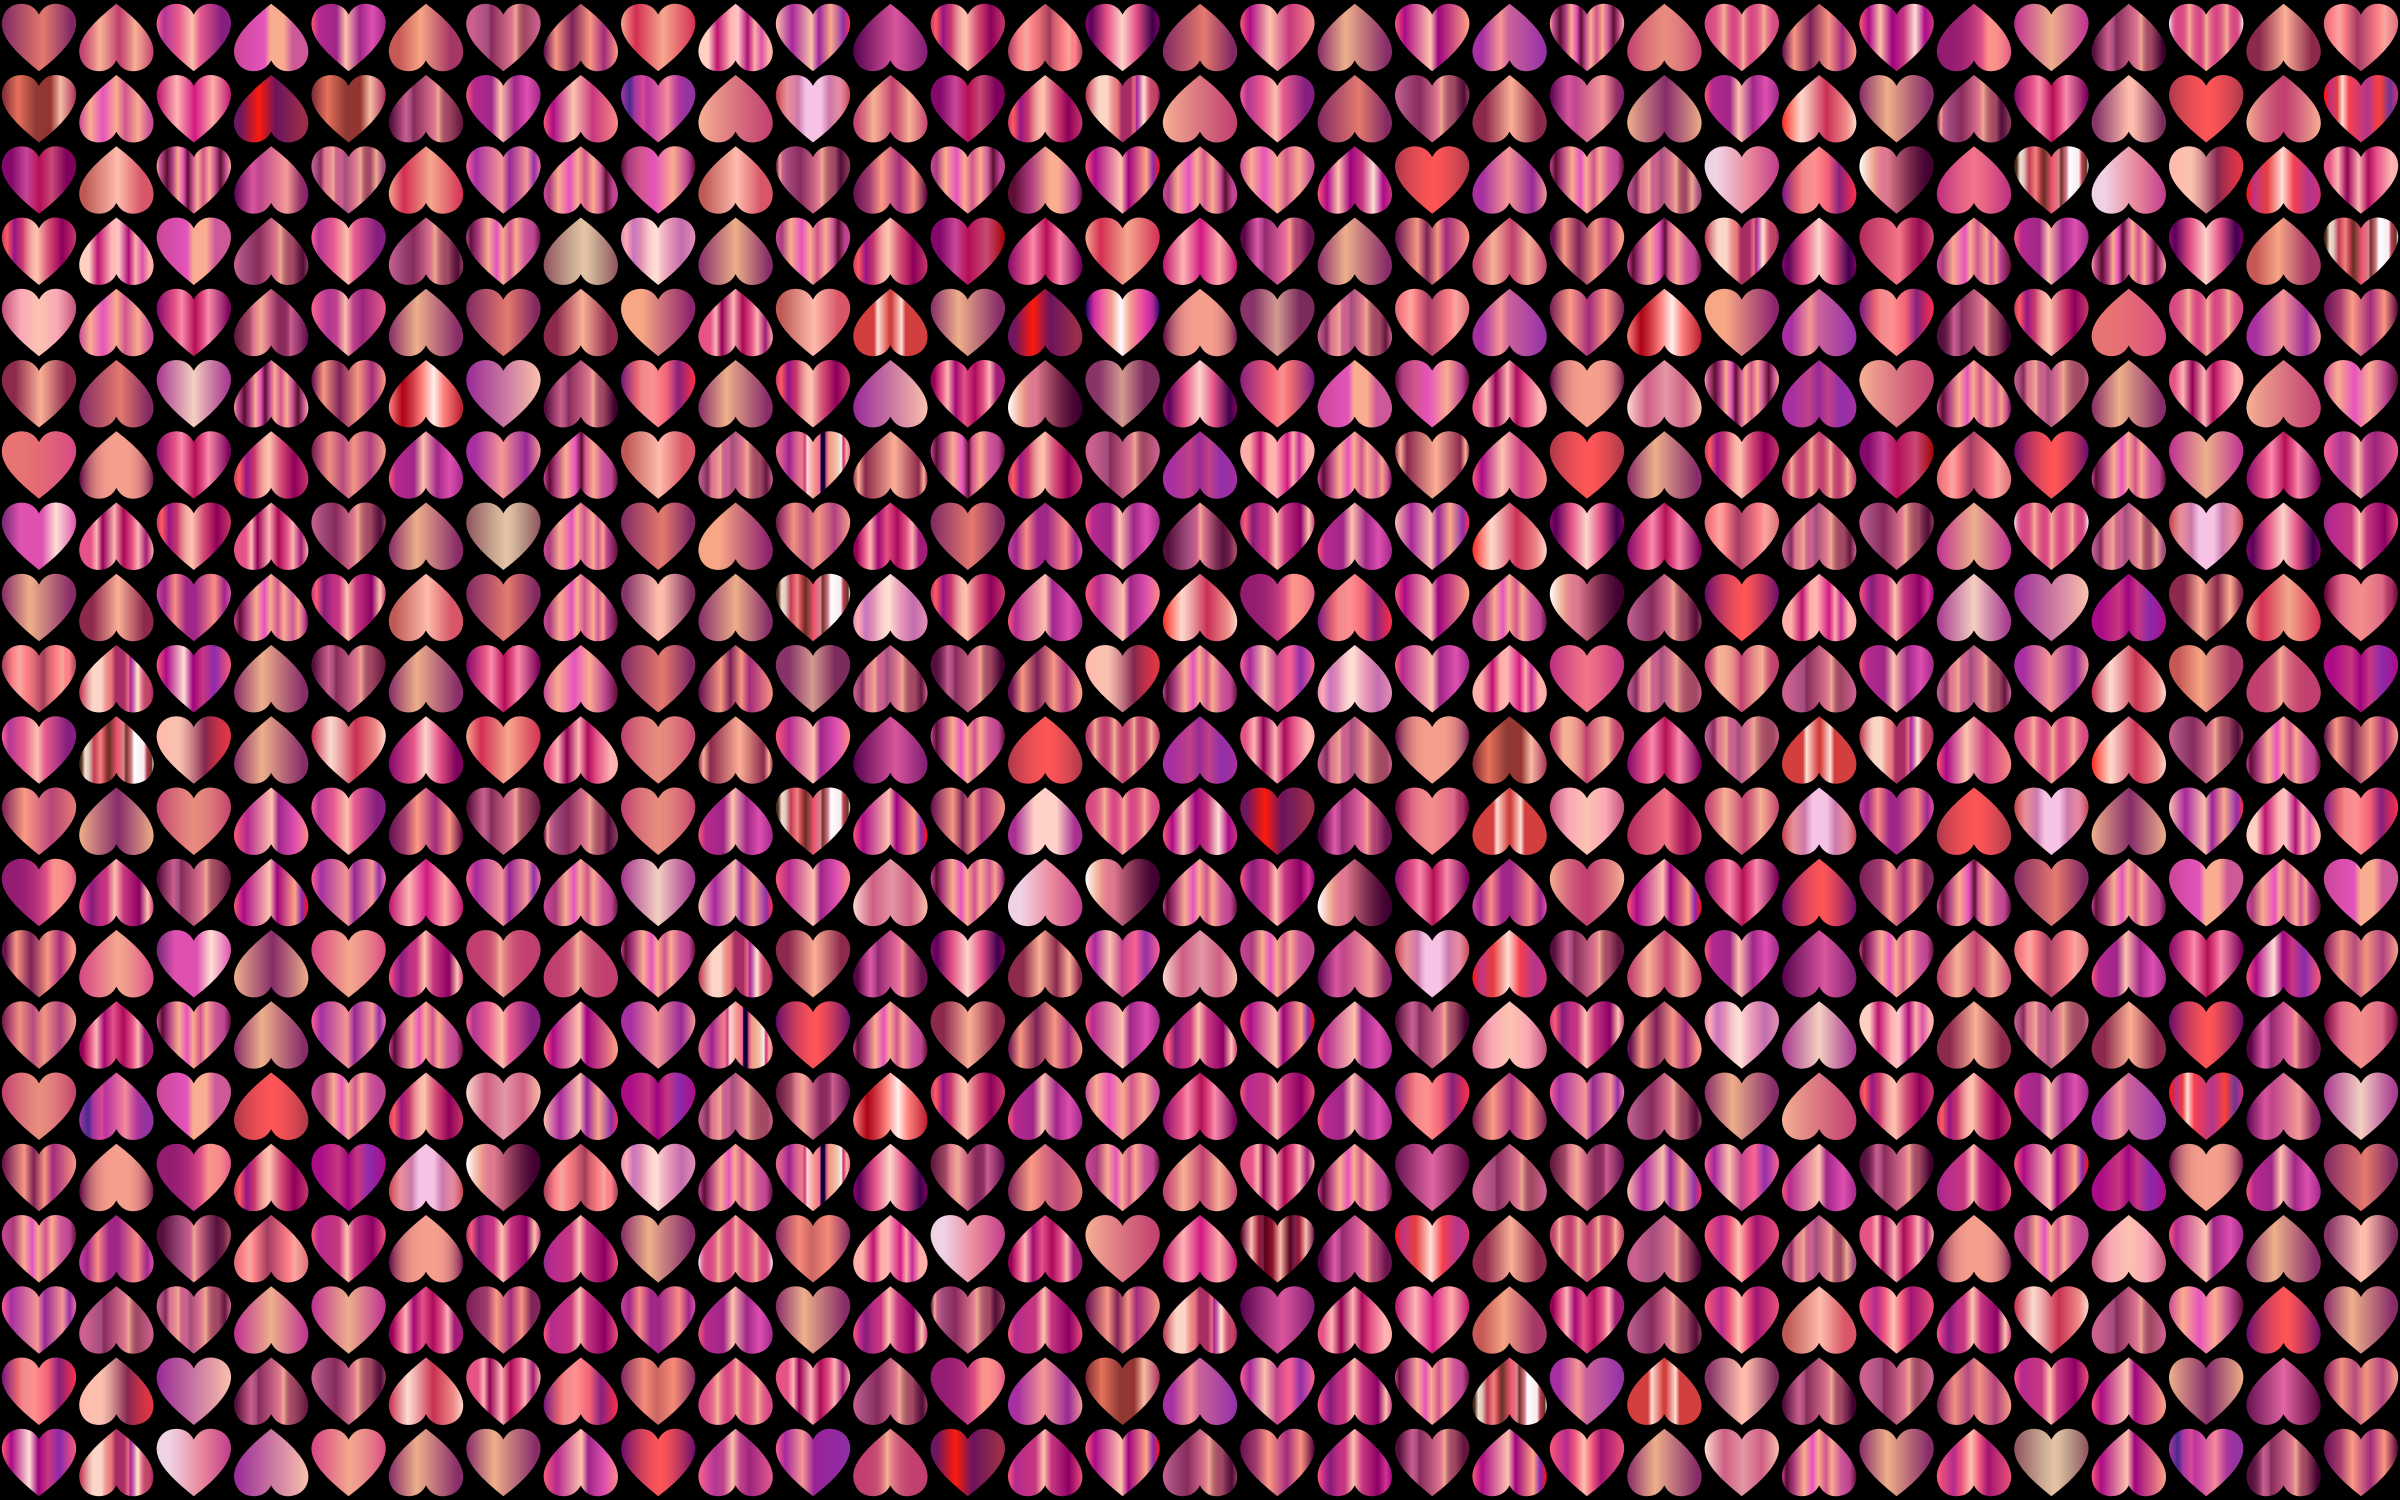 Prismatic Alternating Hearts Pattern Background 9 by GDJ